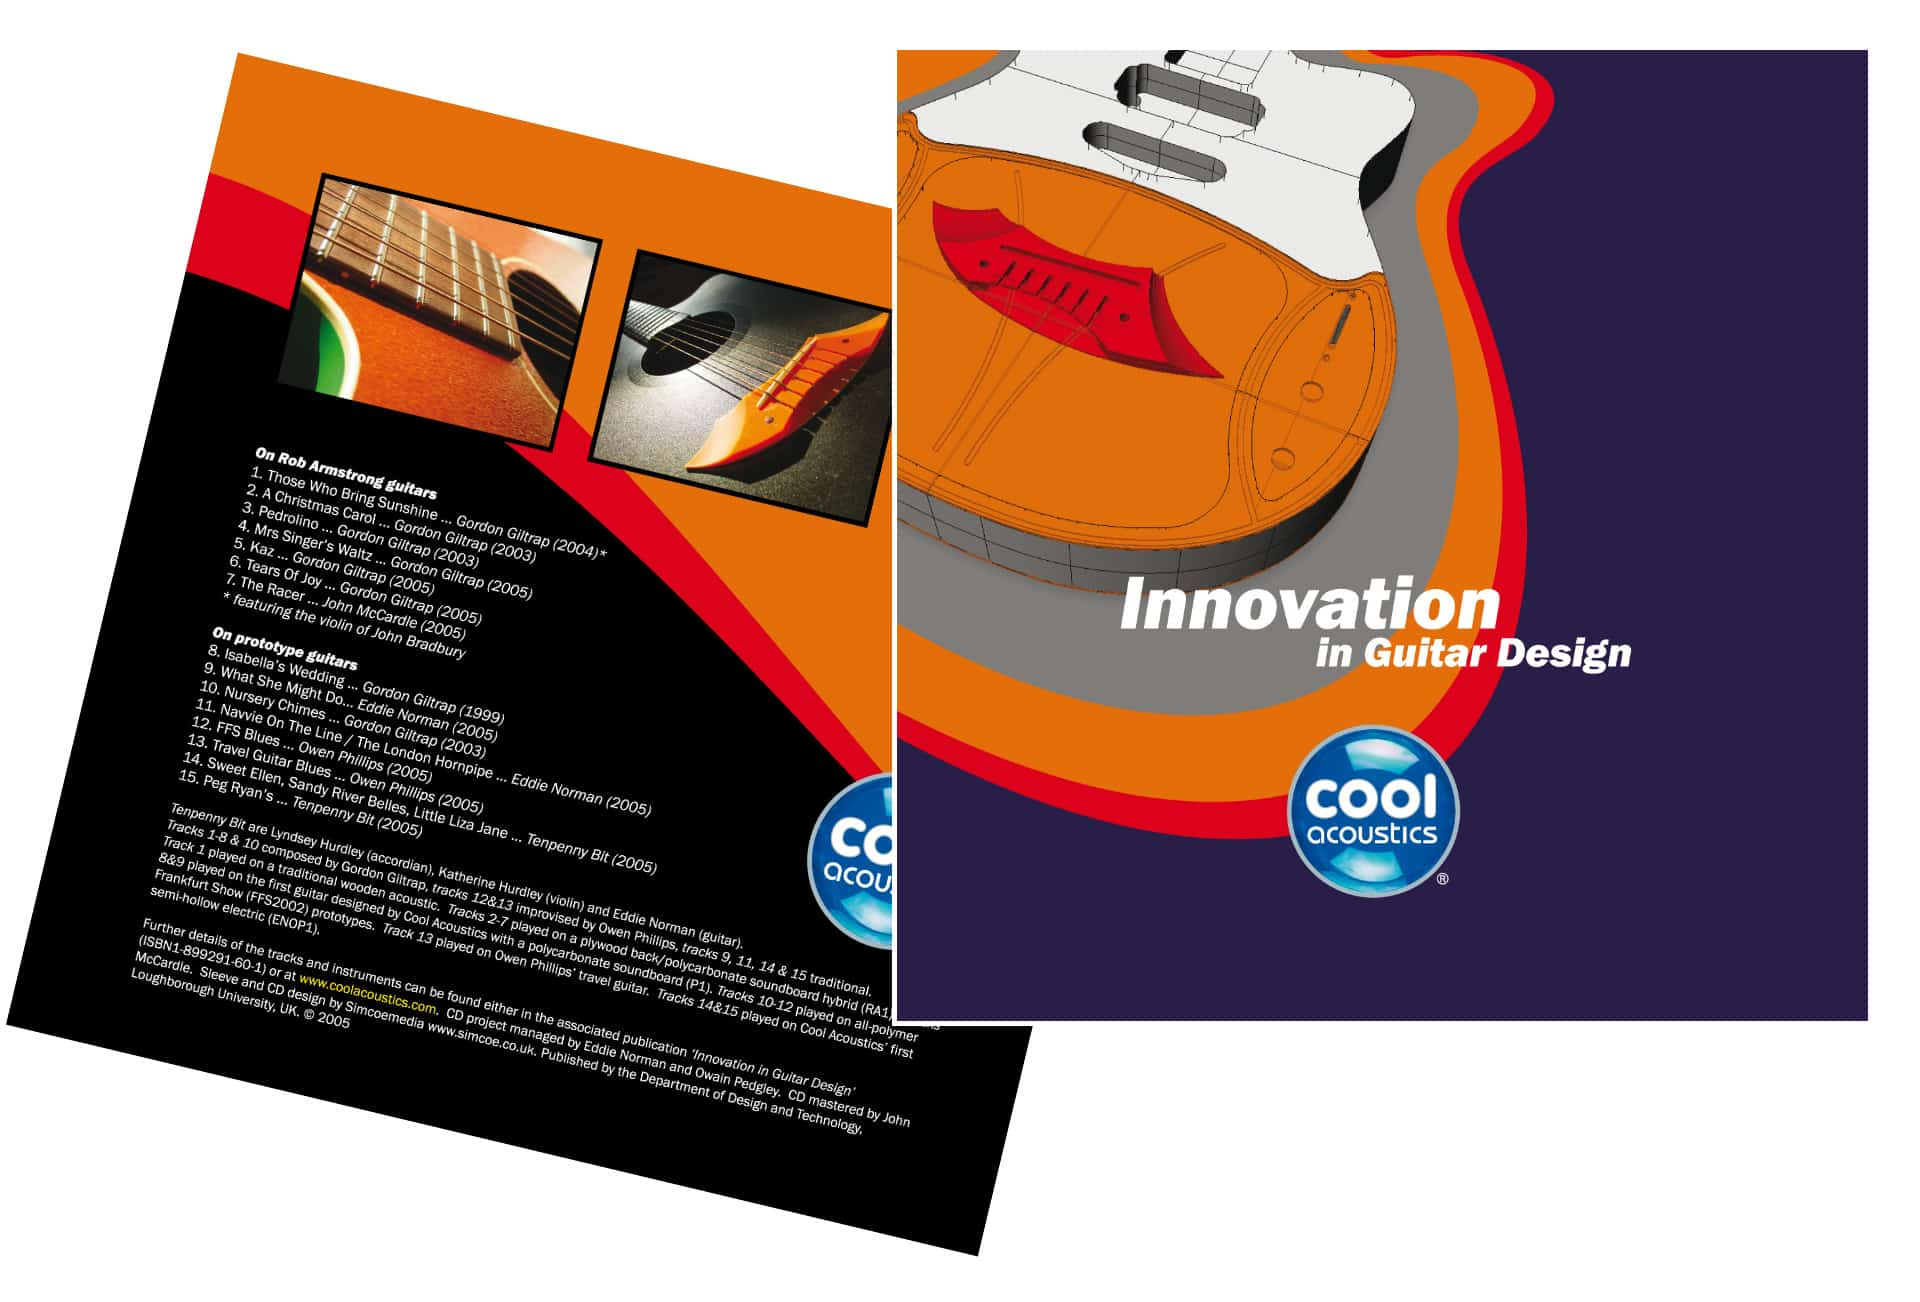 Cool Acoustics CD artwork design